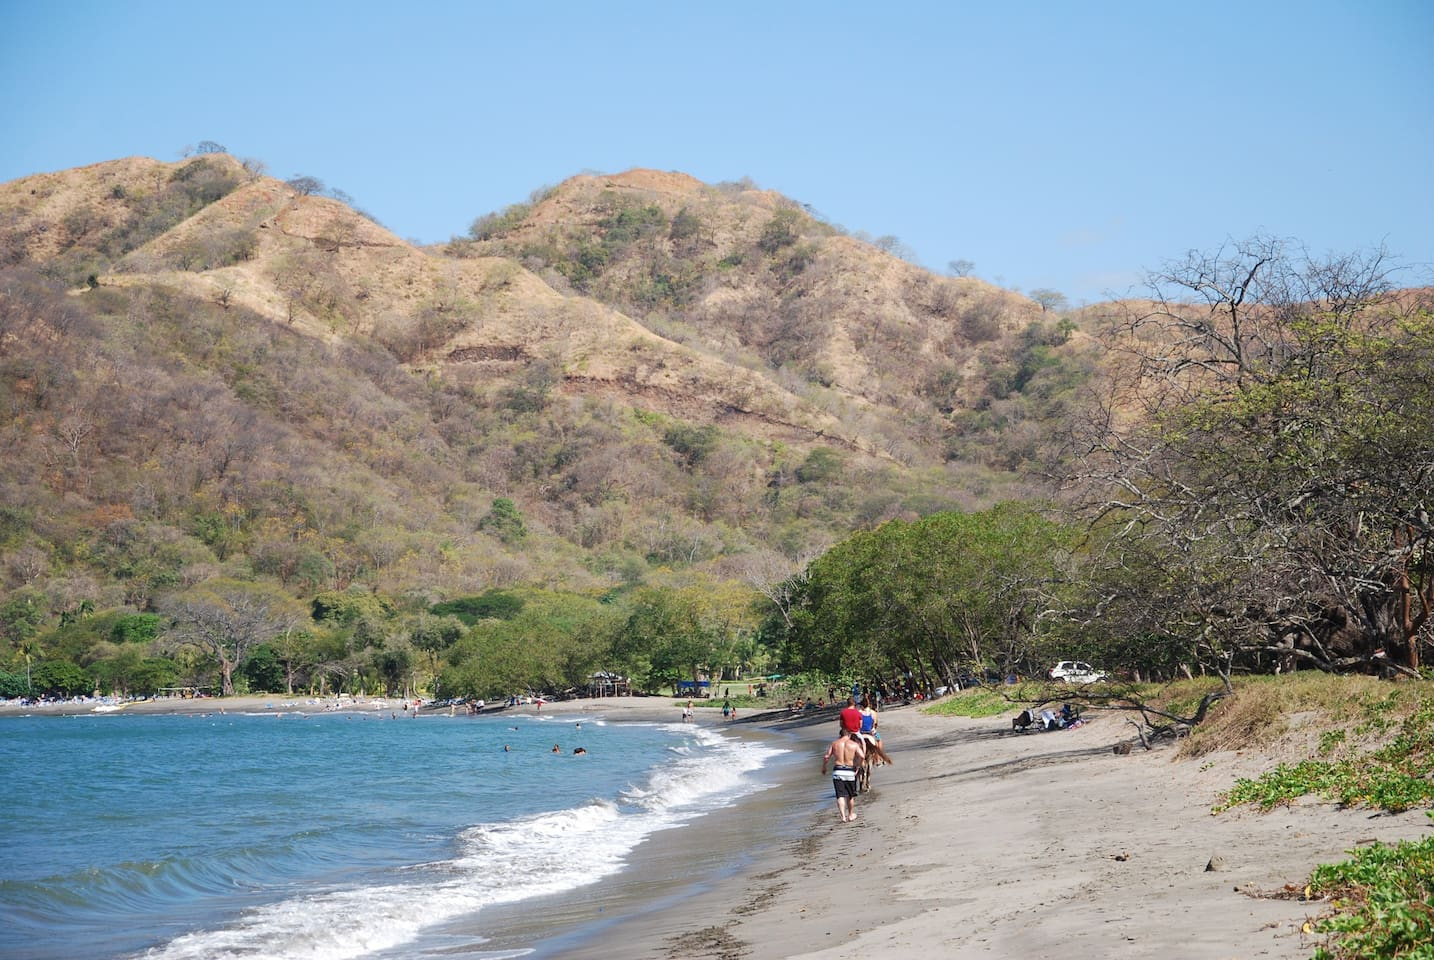 Campground located  300 M from Matapalo beach.   This is near, but isolated from the Hotel Riu.